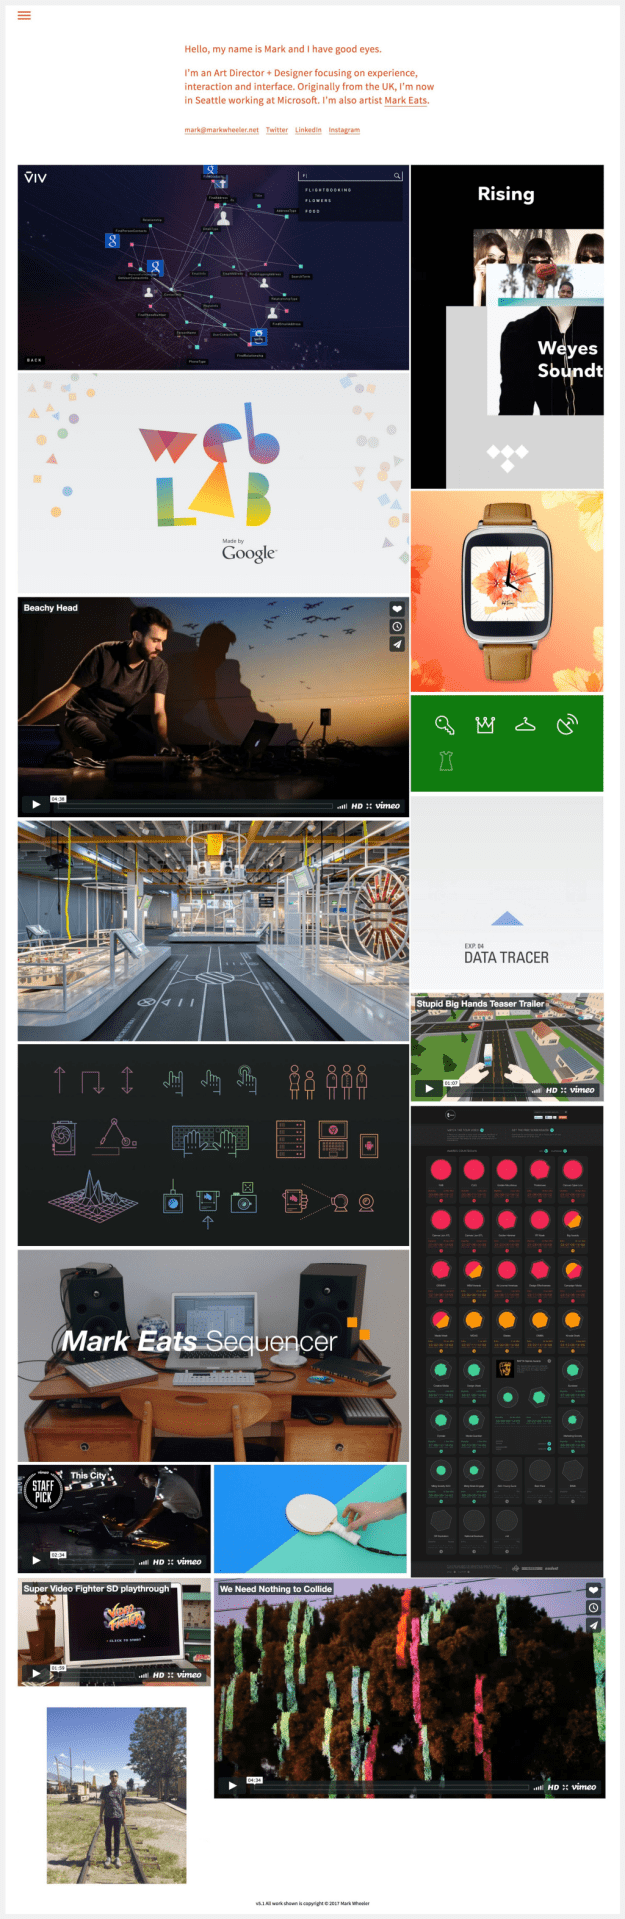 1*BW0xcqneM9-SFZIRNJHWiQ 10 Great Portfolio Websites from Microsoft Designers Design Random